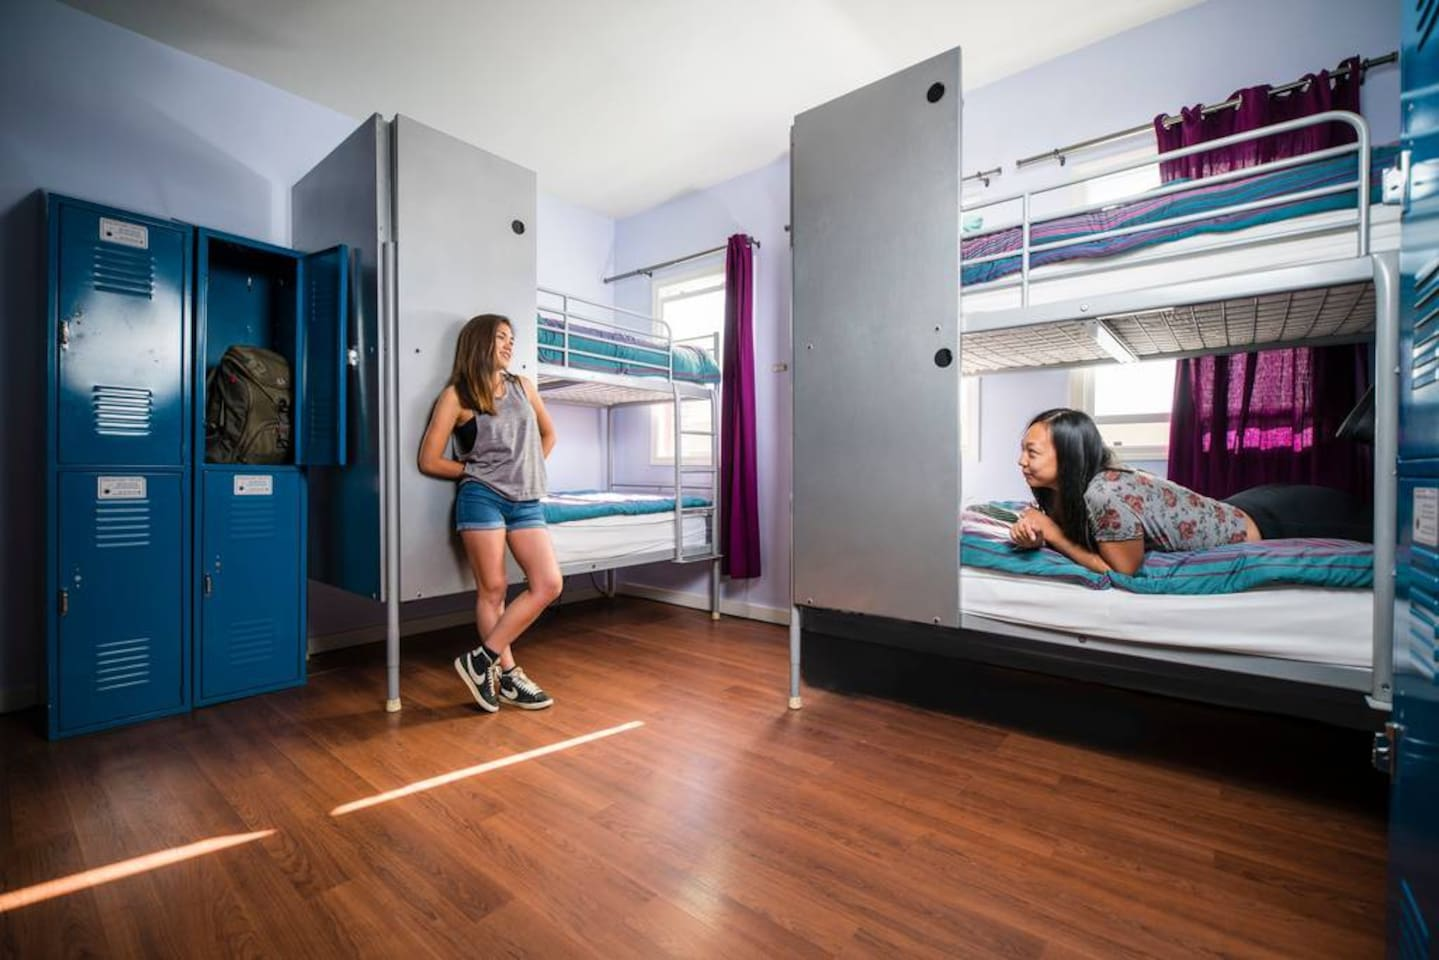 Bed in 6-bed female dorm with bathroom